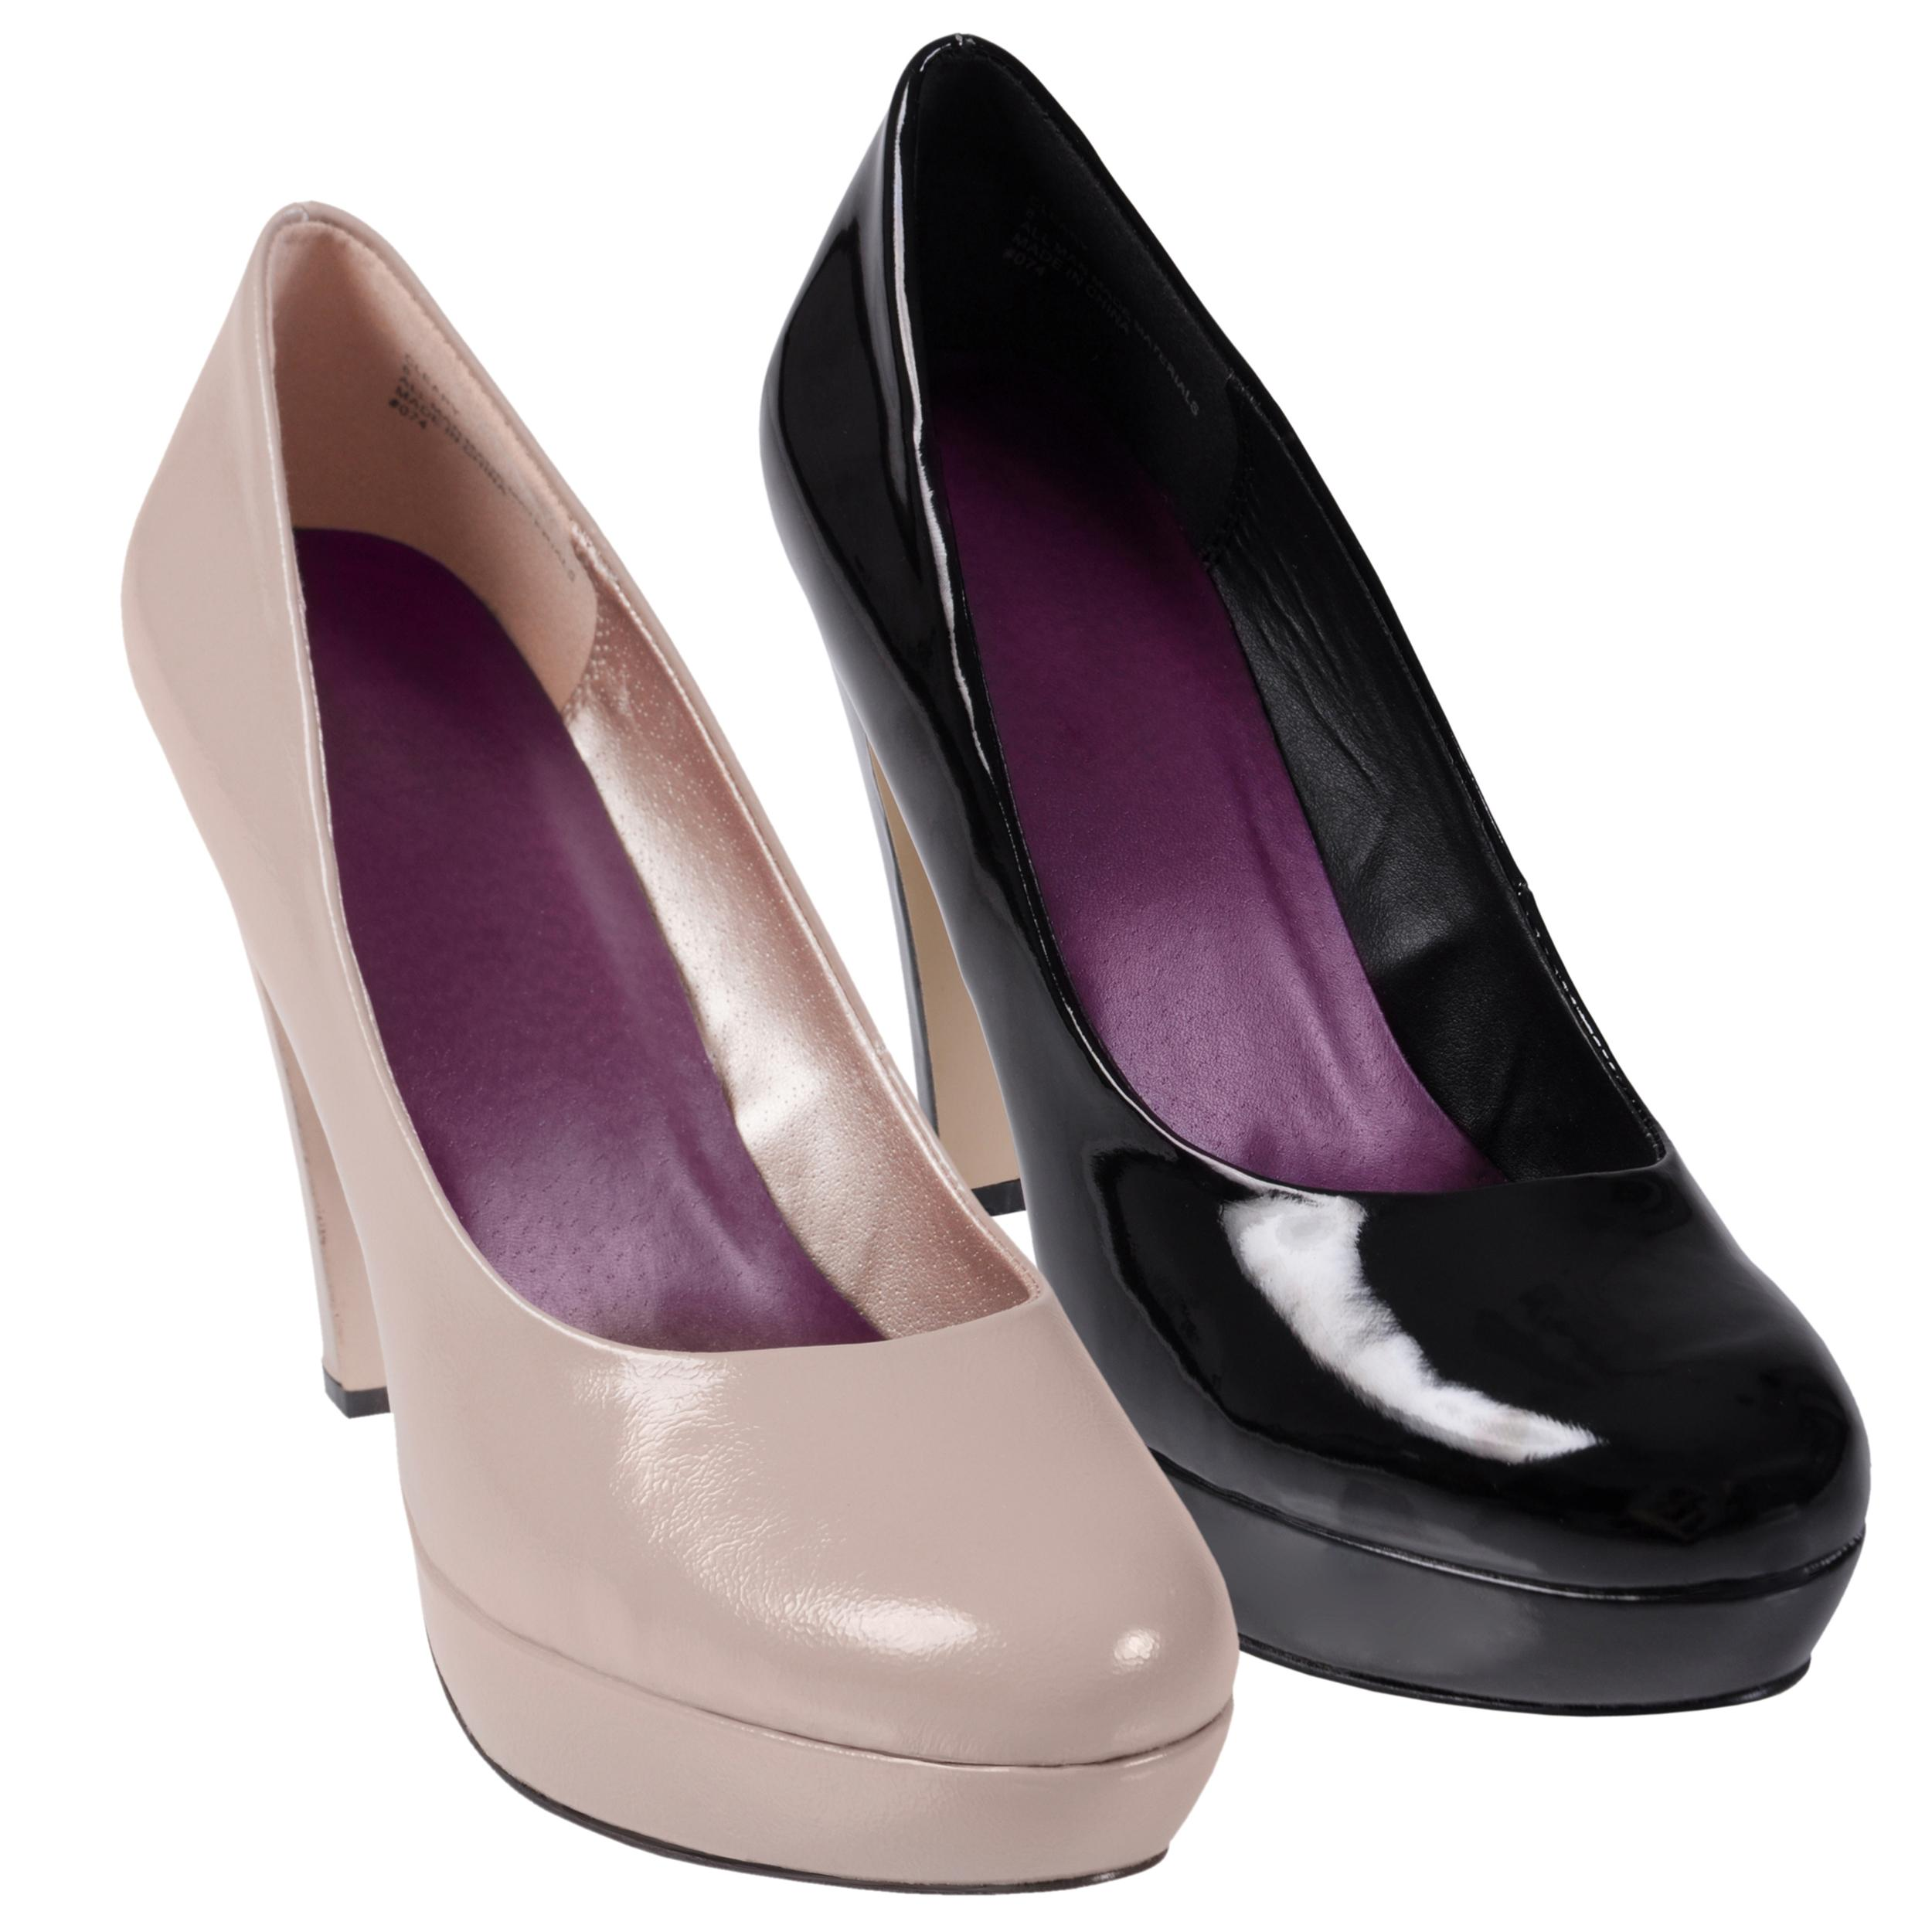 Madden Girl by Steve Madden Women's 'Cleary' Patent Pumps